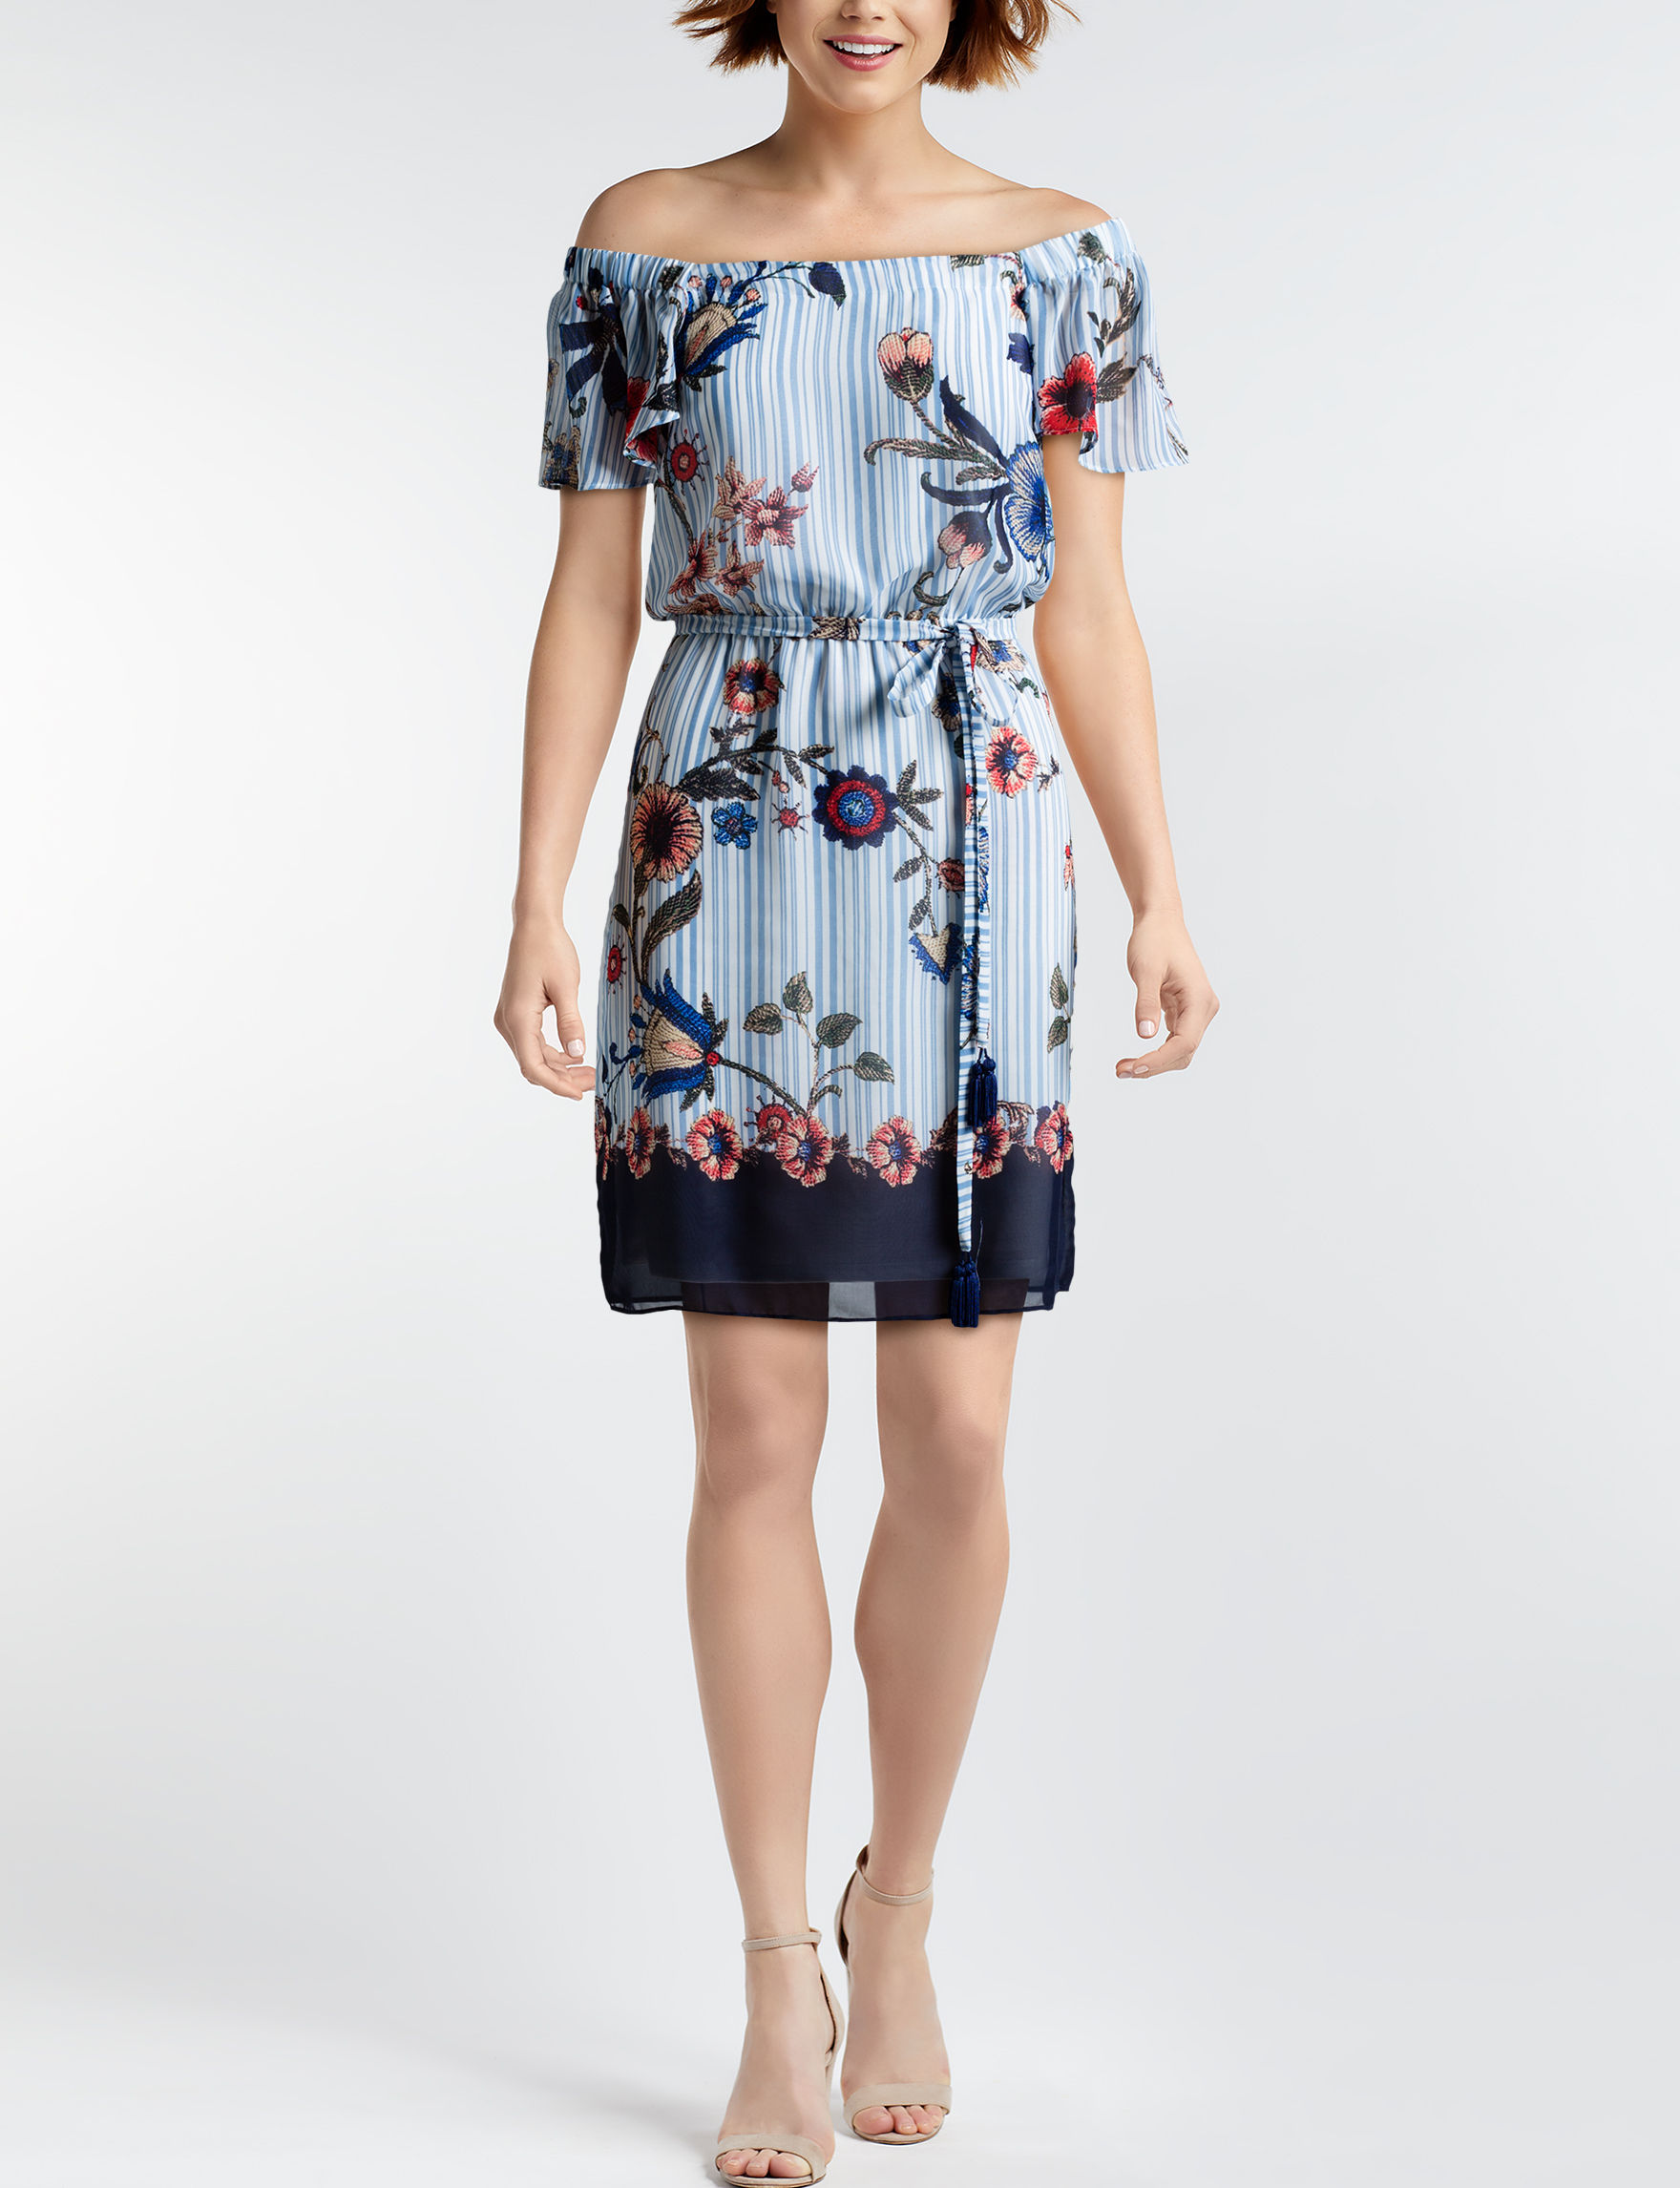 Robbie Bee Blue Everyday & Casual Shift Dresses